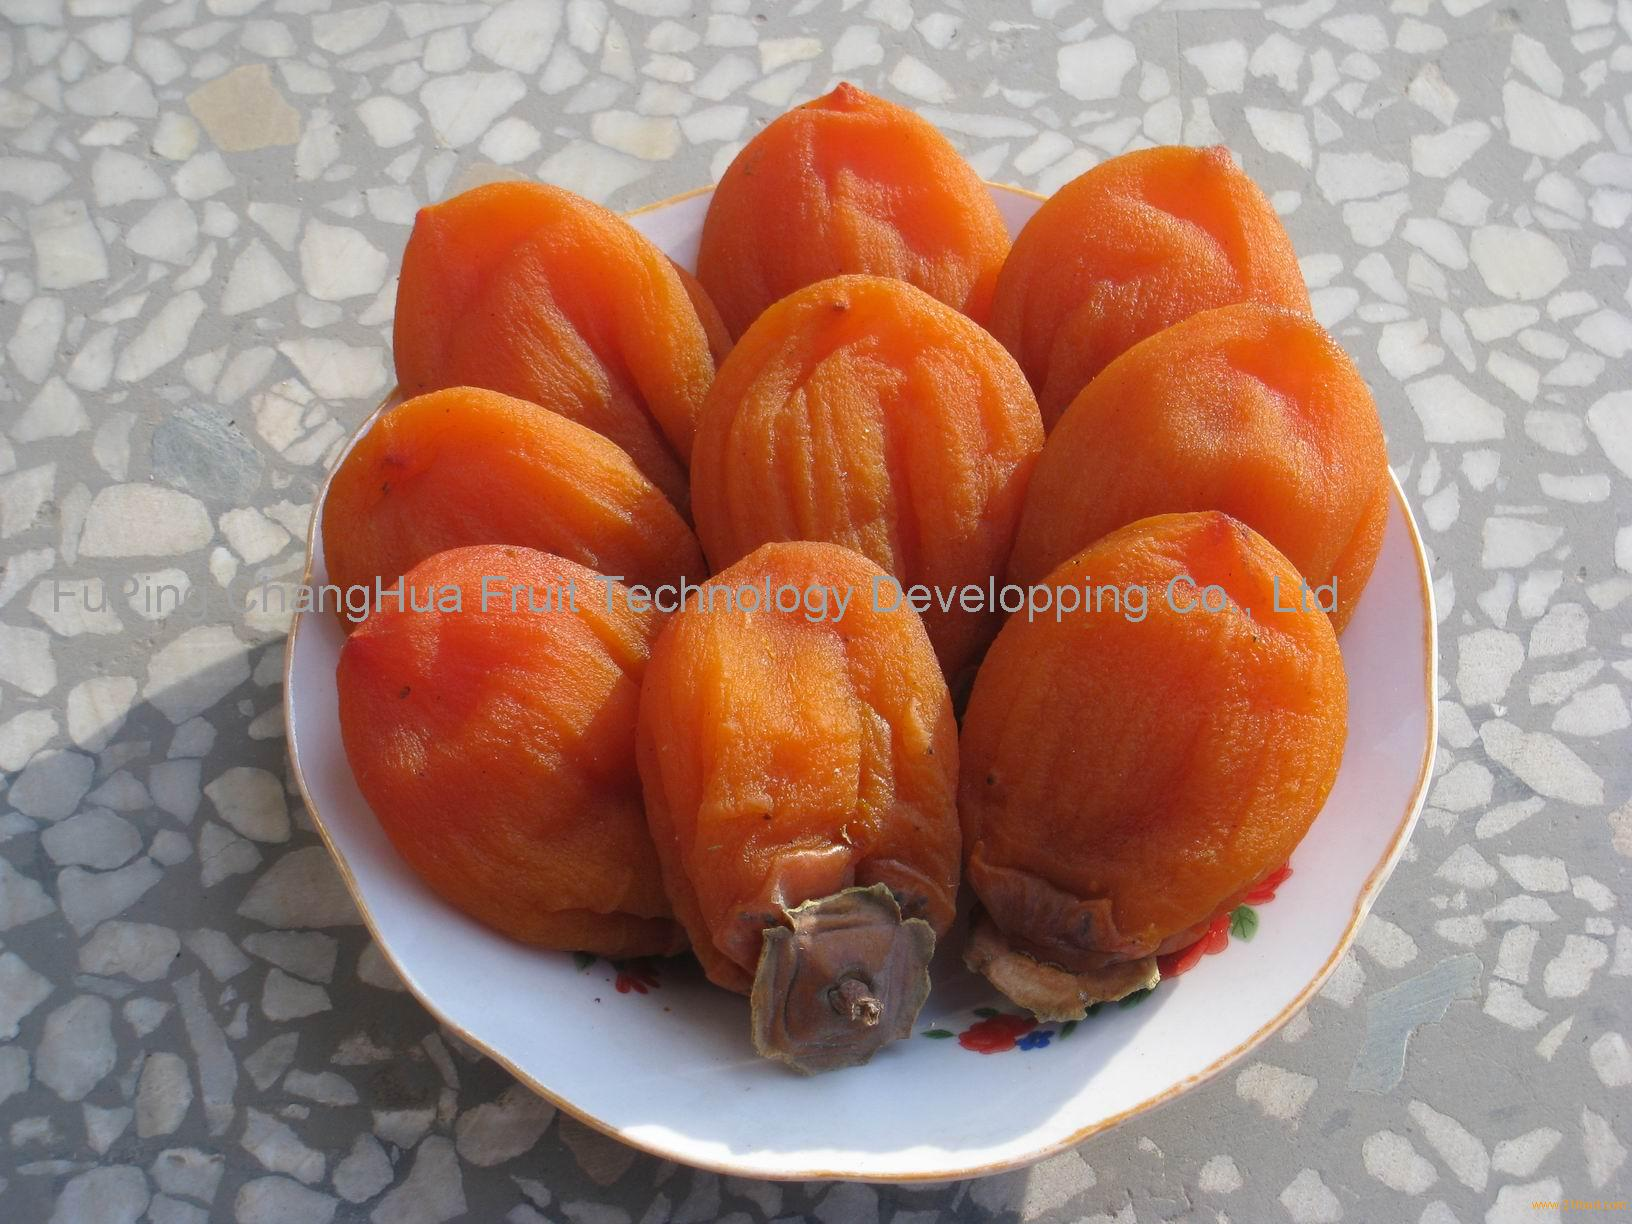 Sweet Persimmon products,China Sweet Persimmon supplier